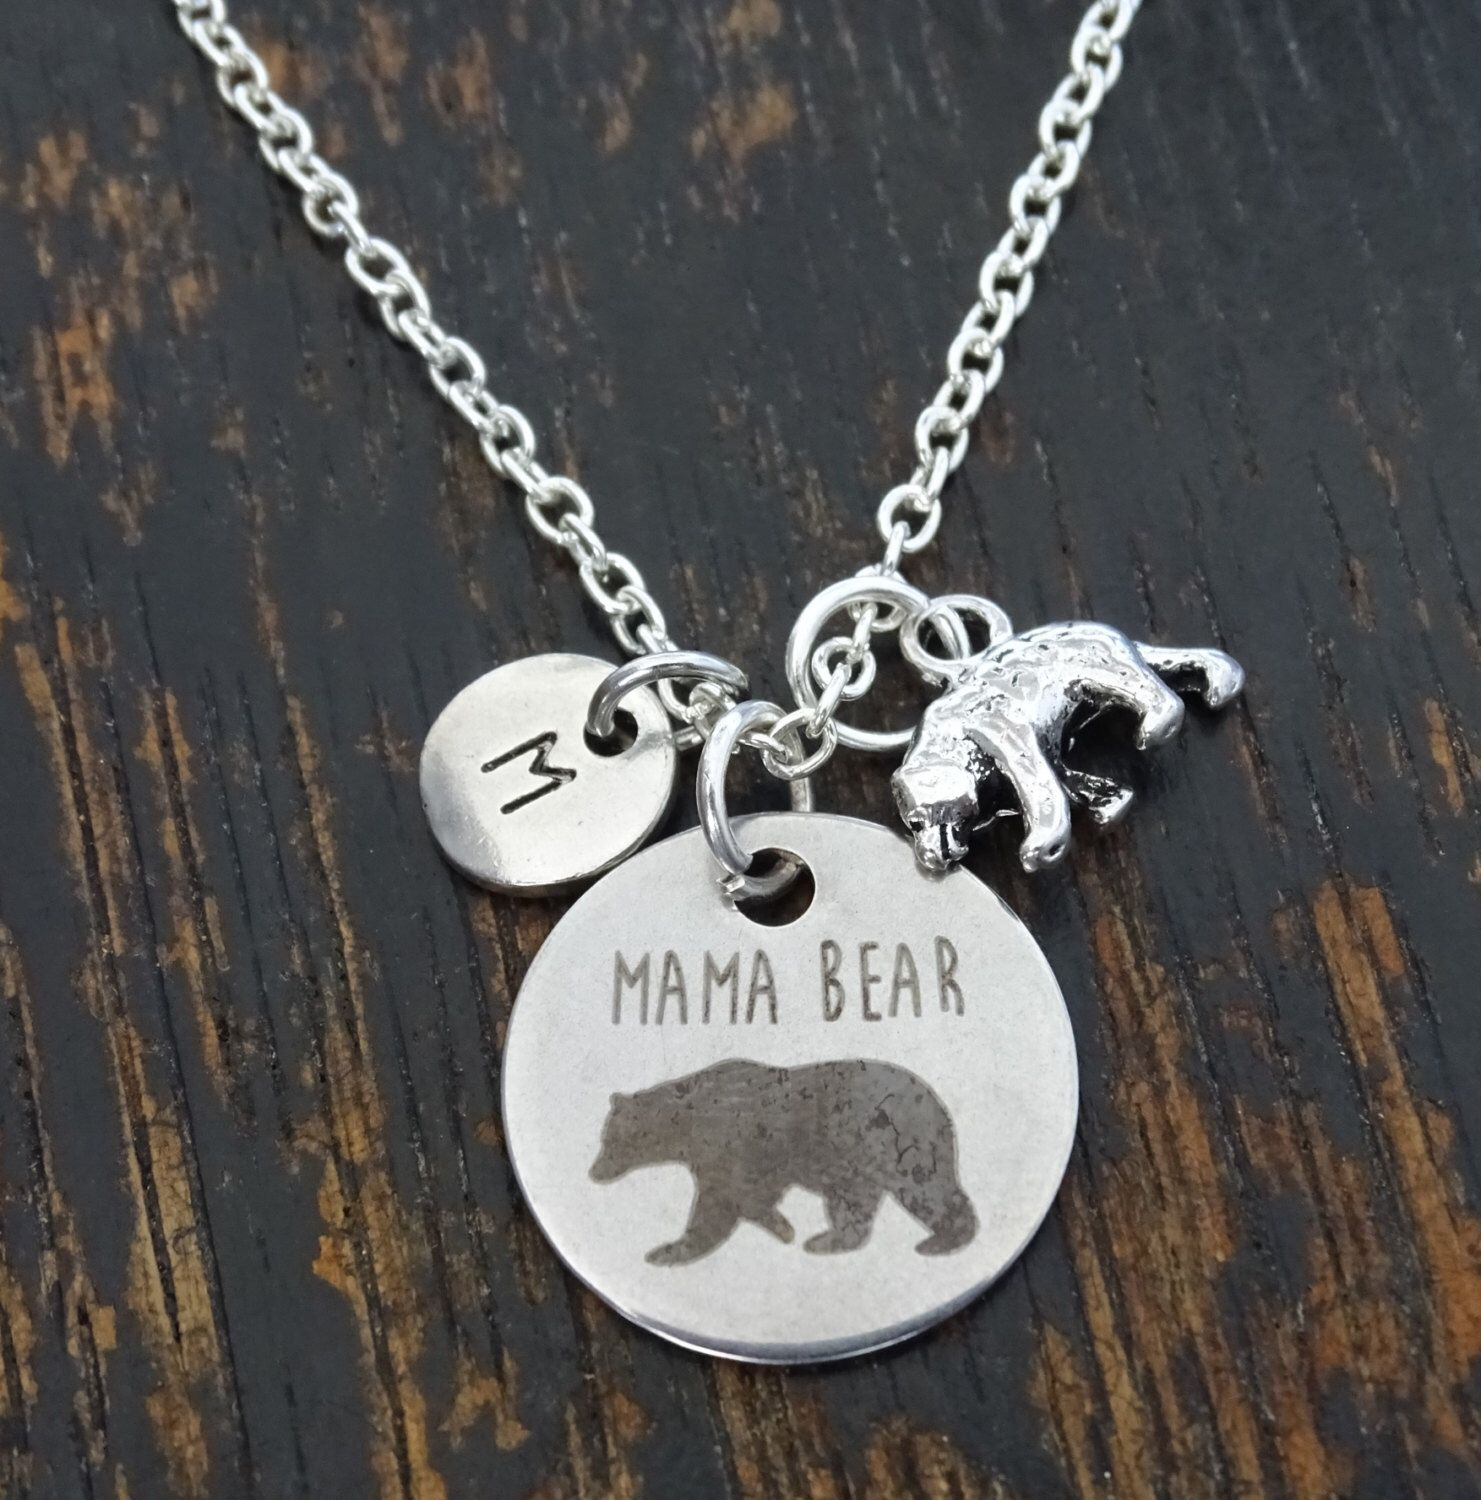 necklace mama or junkjewels notonthehighstreet original com product bangle junk by bear jewels